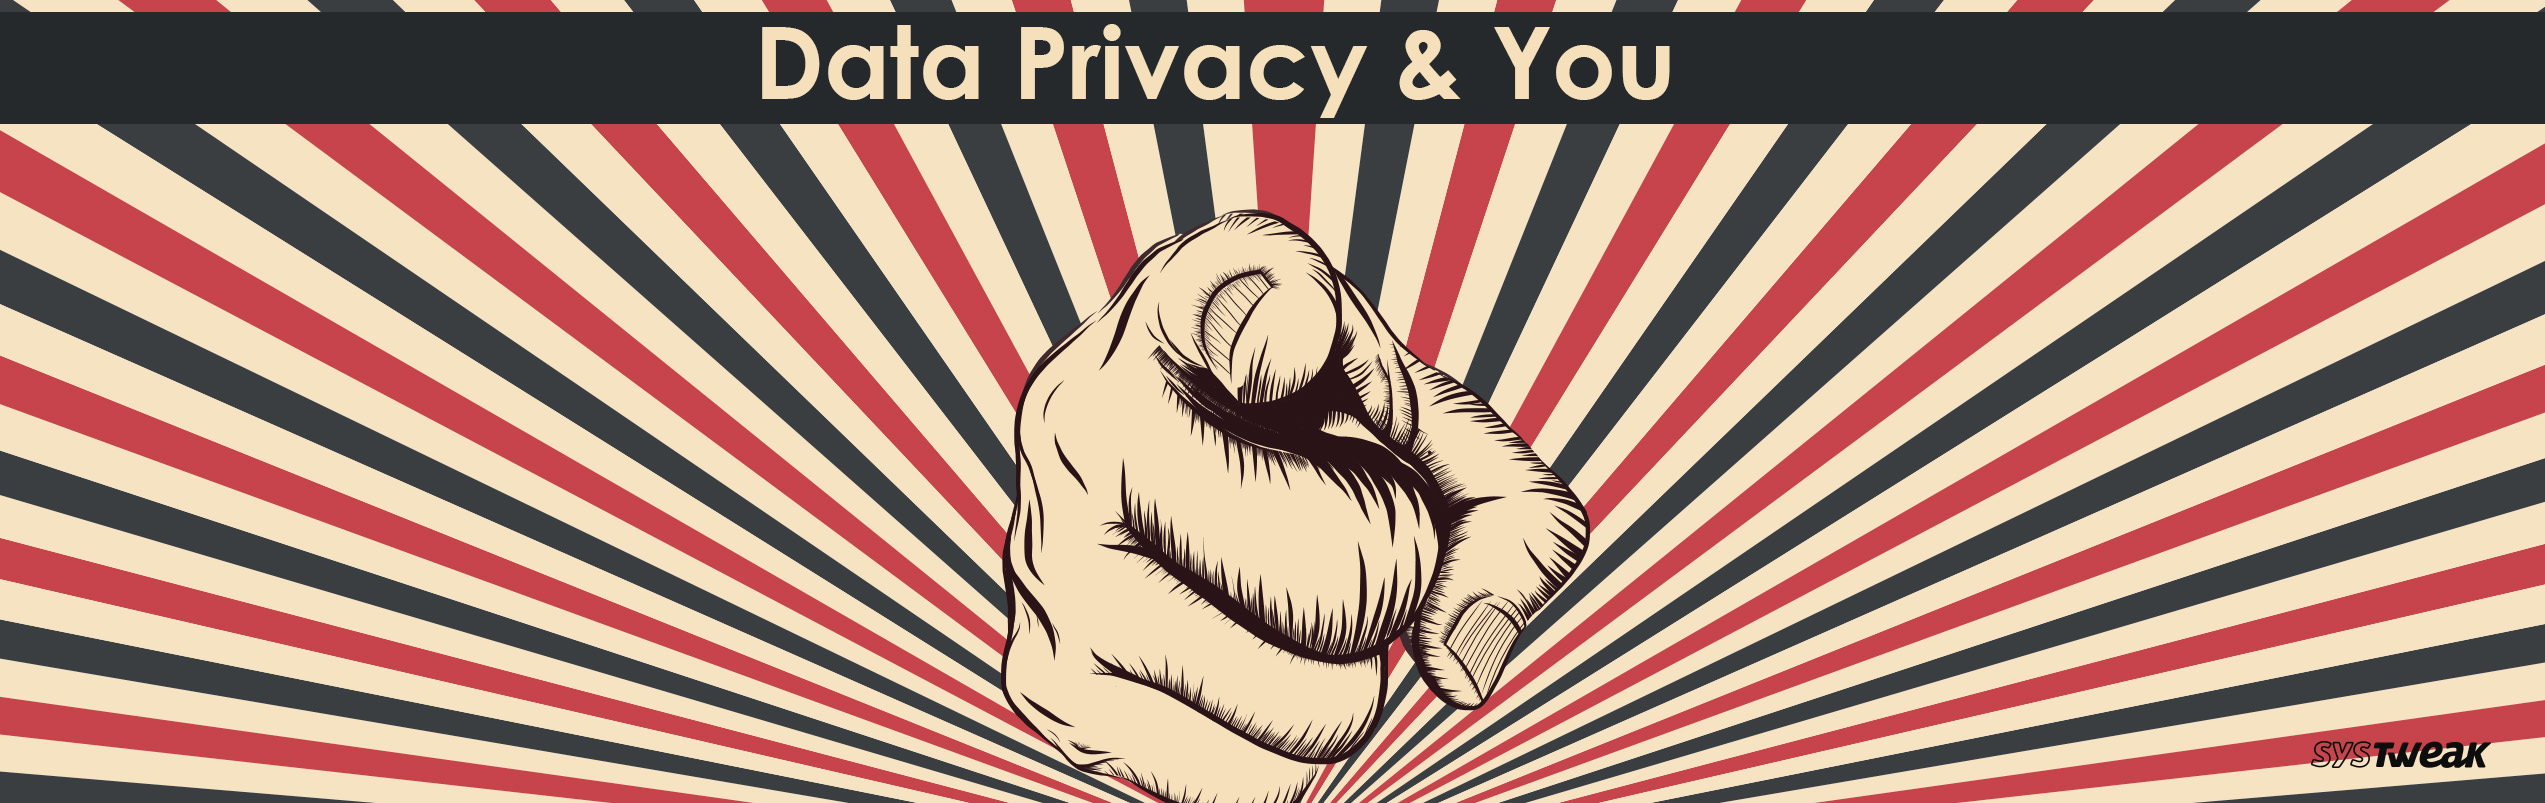 Data Privacy And How It Affects You